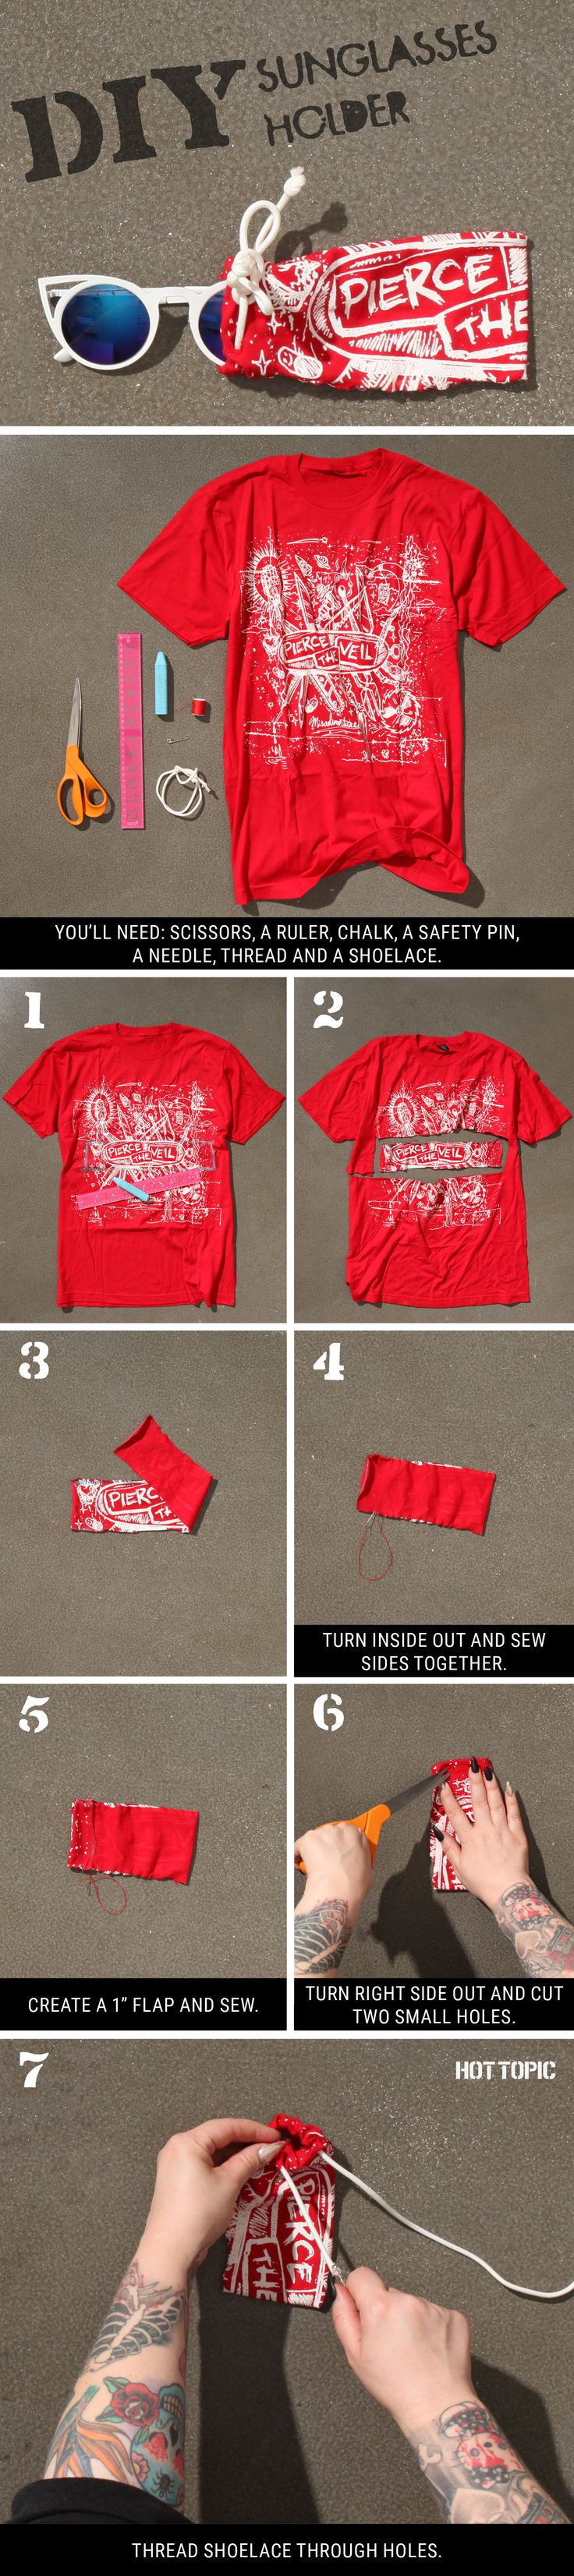 Old Tees = Awesome Sunglasses case // DIY Pierce The Veil Sunglasses holder